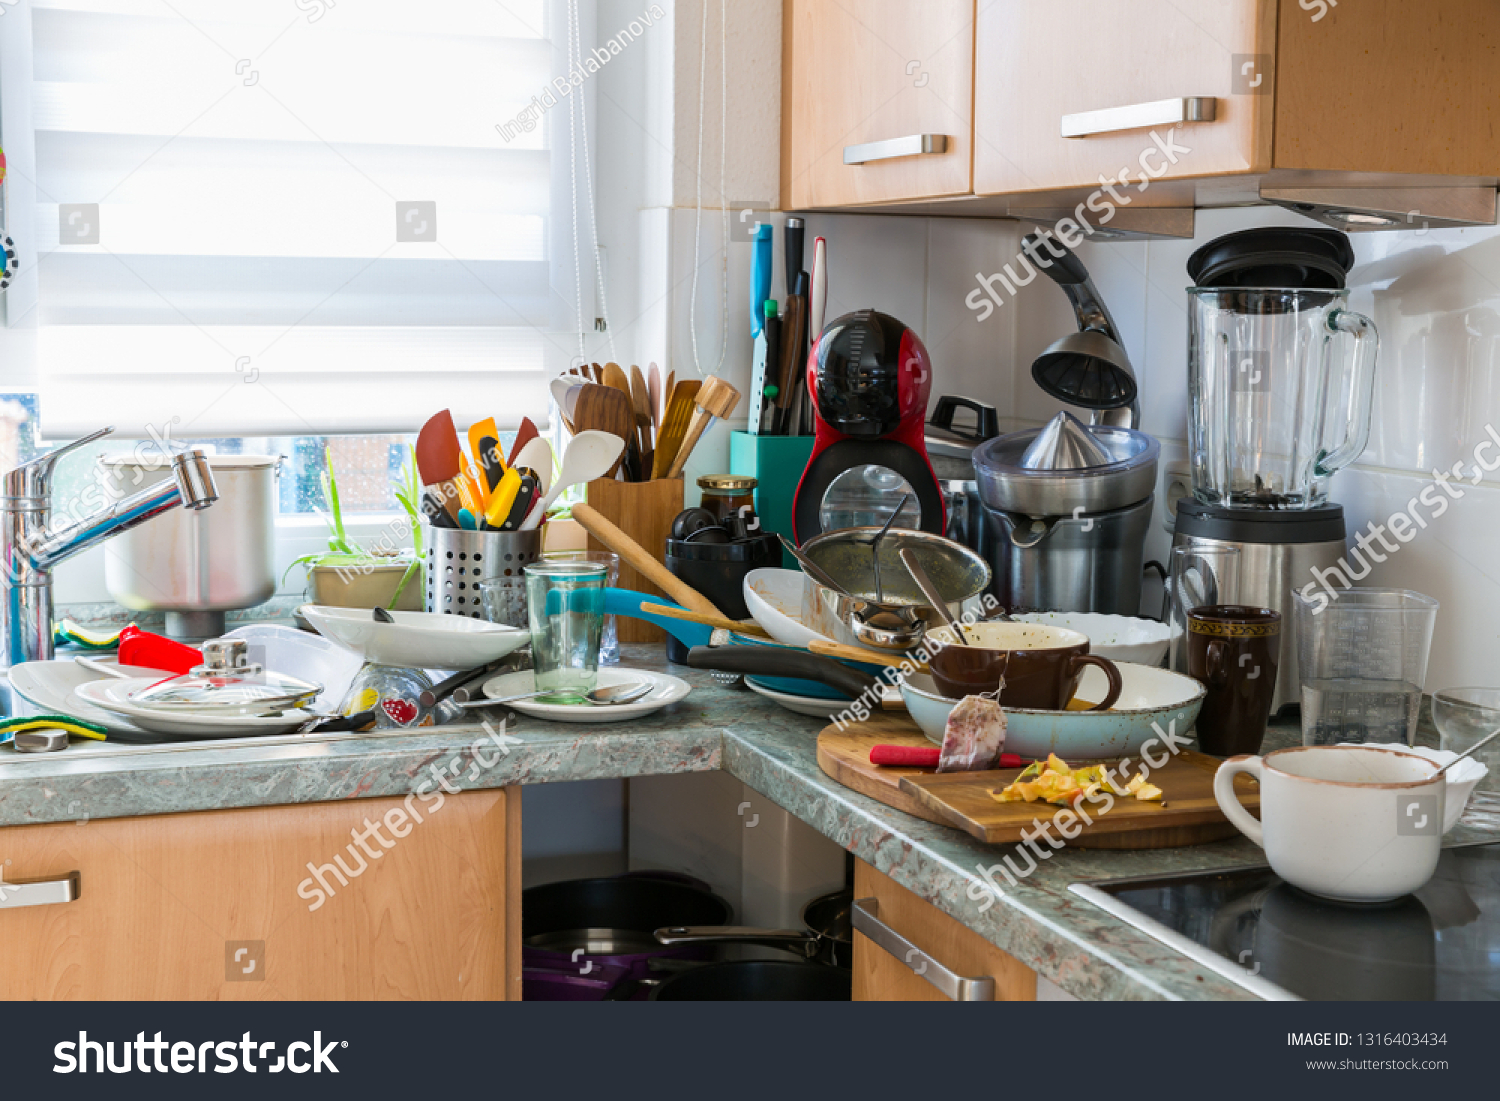 Compulsive Hoarding Syndrom - messy kitchen with pile of dirty dishes #1316403434